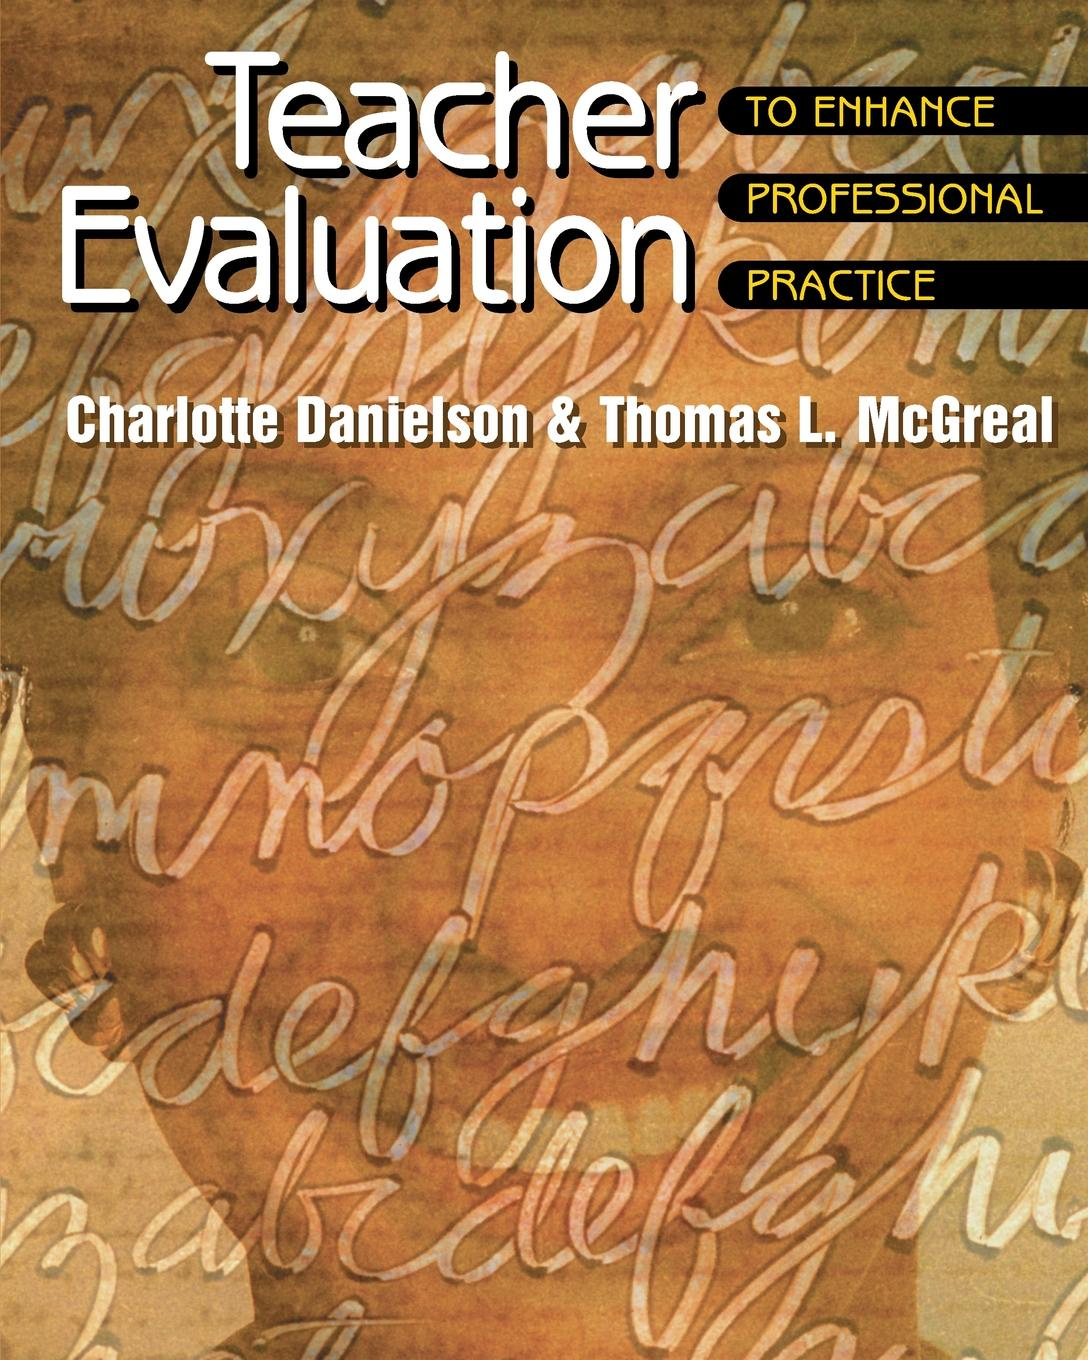 Фото - Charlotte Danielson, Thomas L McGreal Teacher Evaluation to Enhance Professional Practice the influence of head teacher evaluation on their professional growth